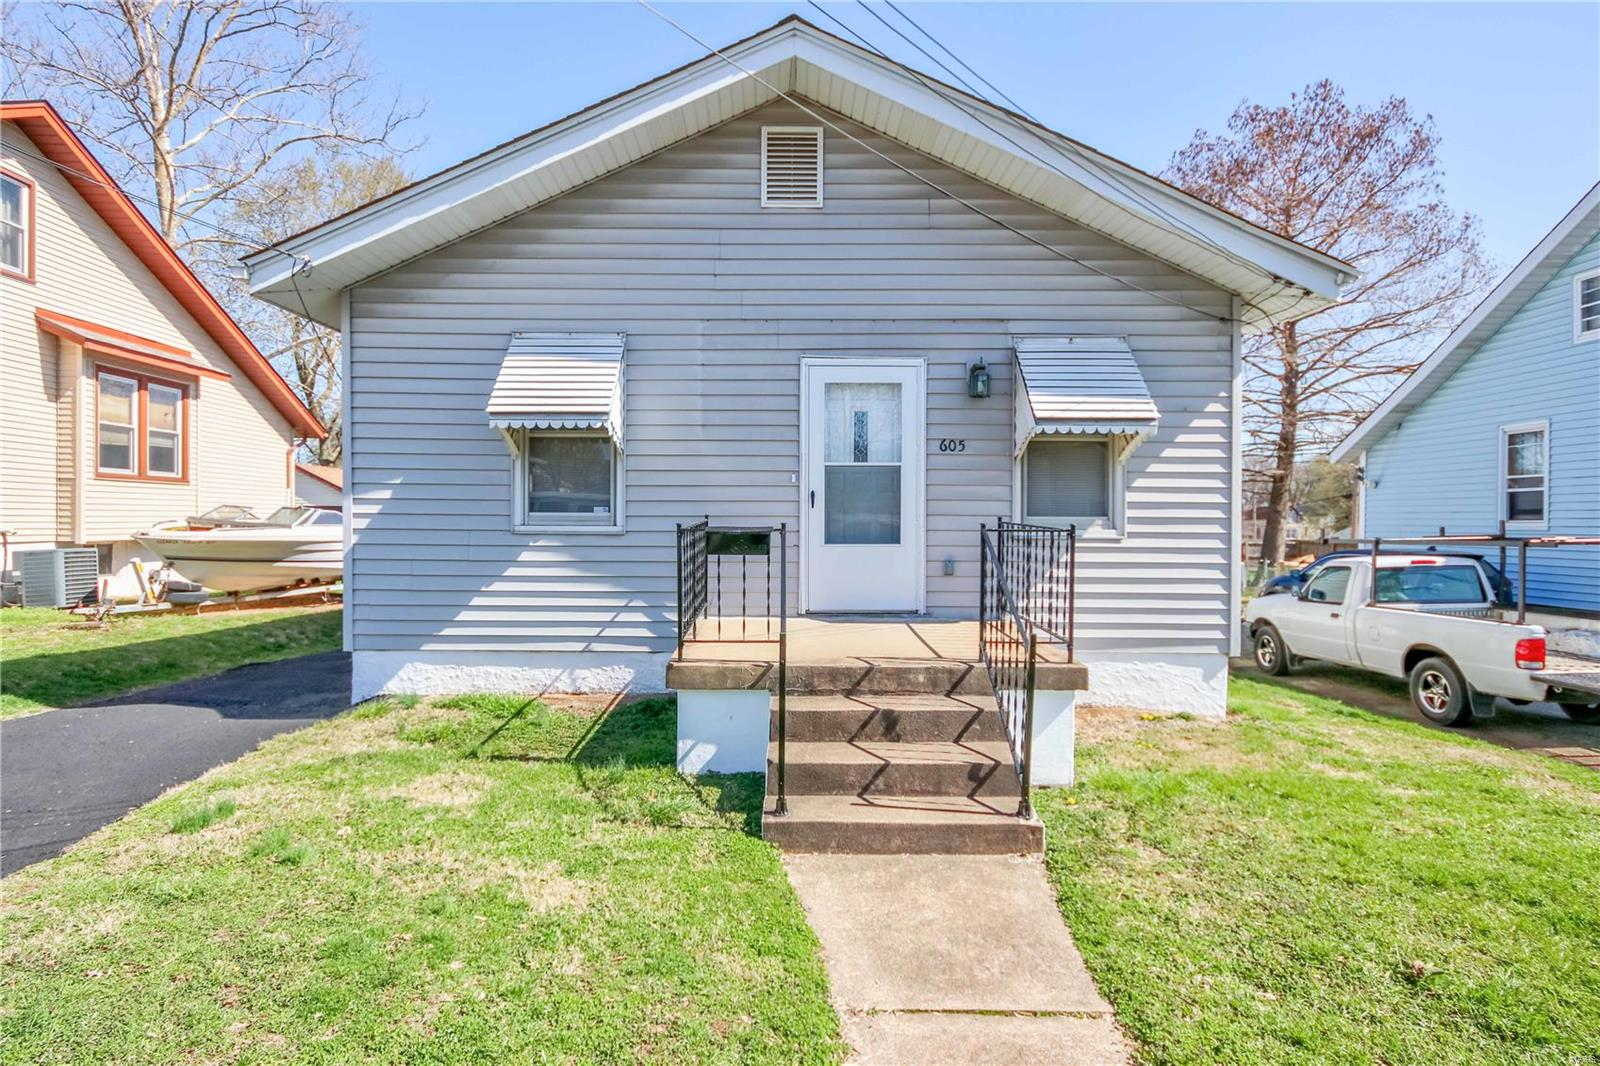 605 Weiss Avenue Property Photo - St Louis, MO real estate listing